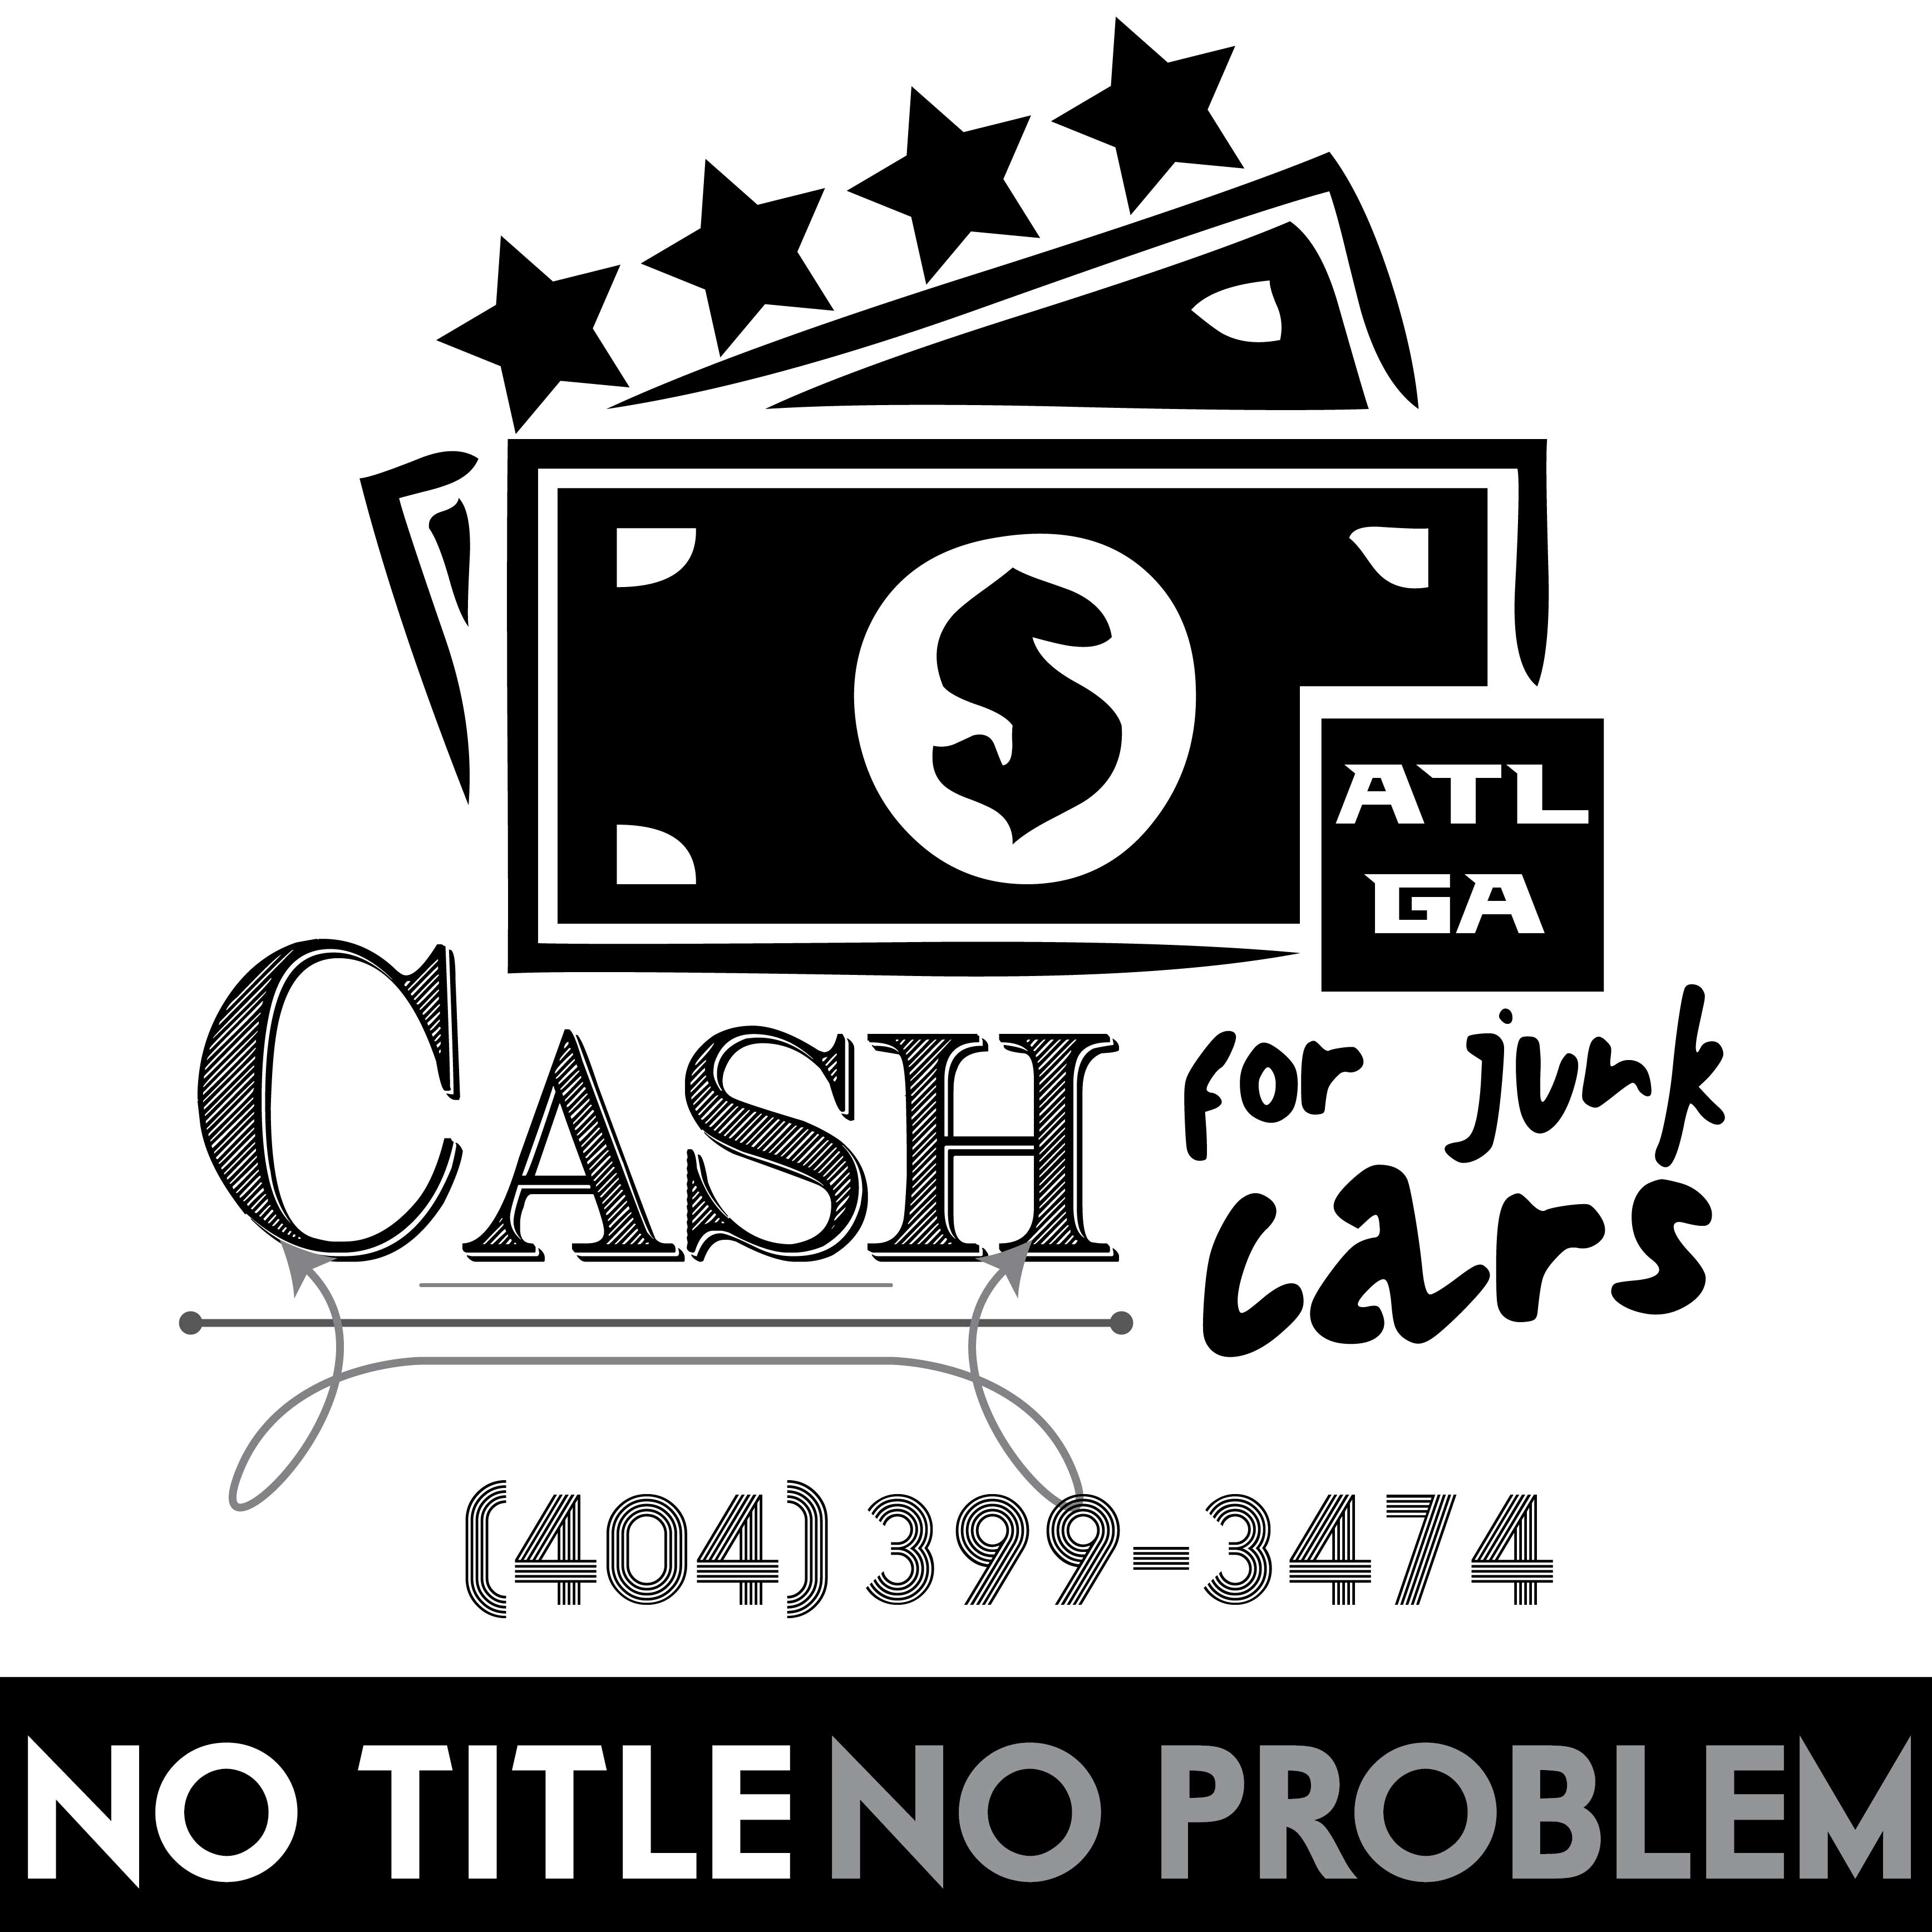 Car Crushers Cash For Junk Cars W/o Titles